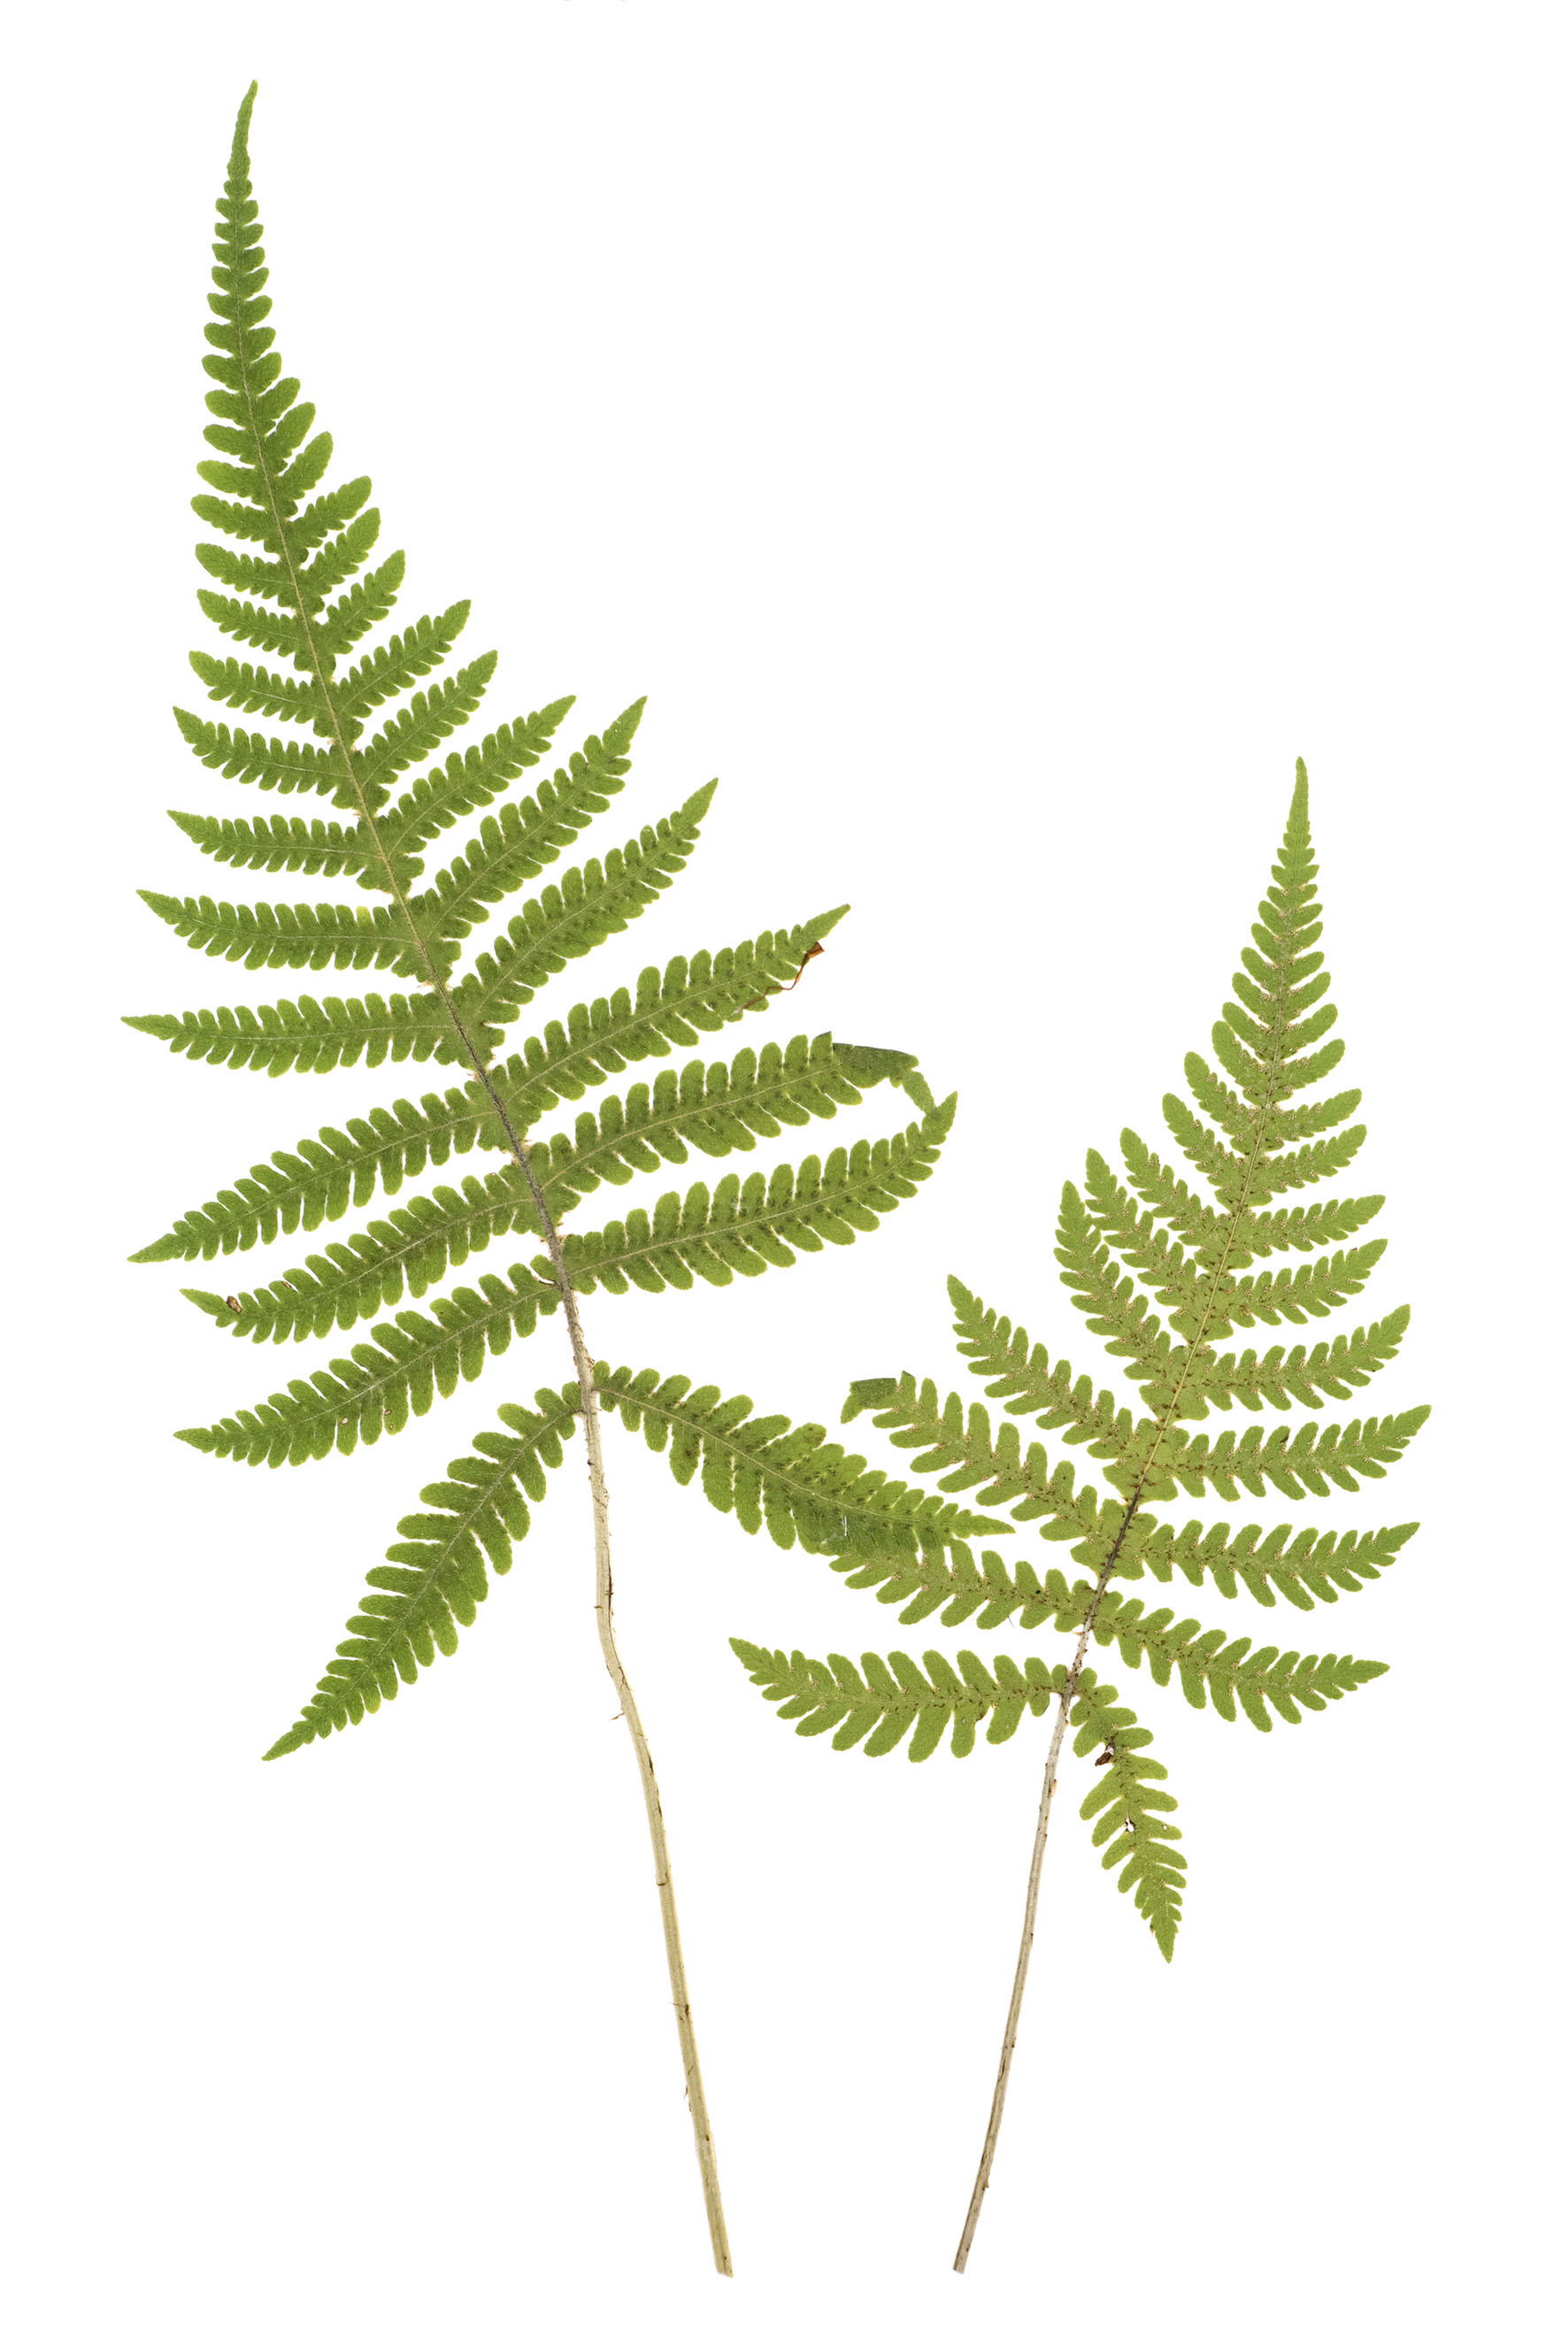 New! Long Beech Fern / Phegopteris connectilis